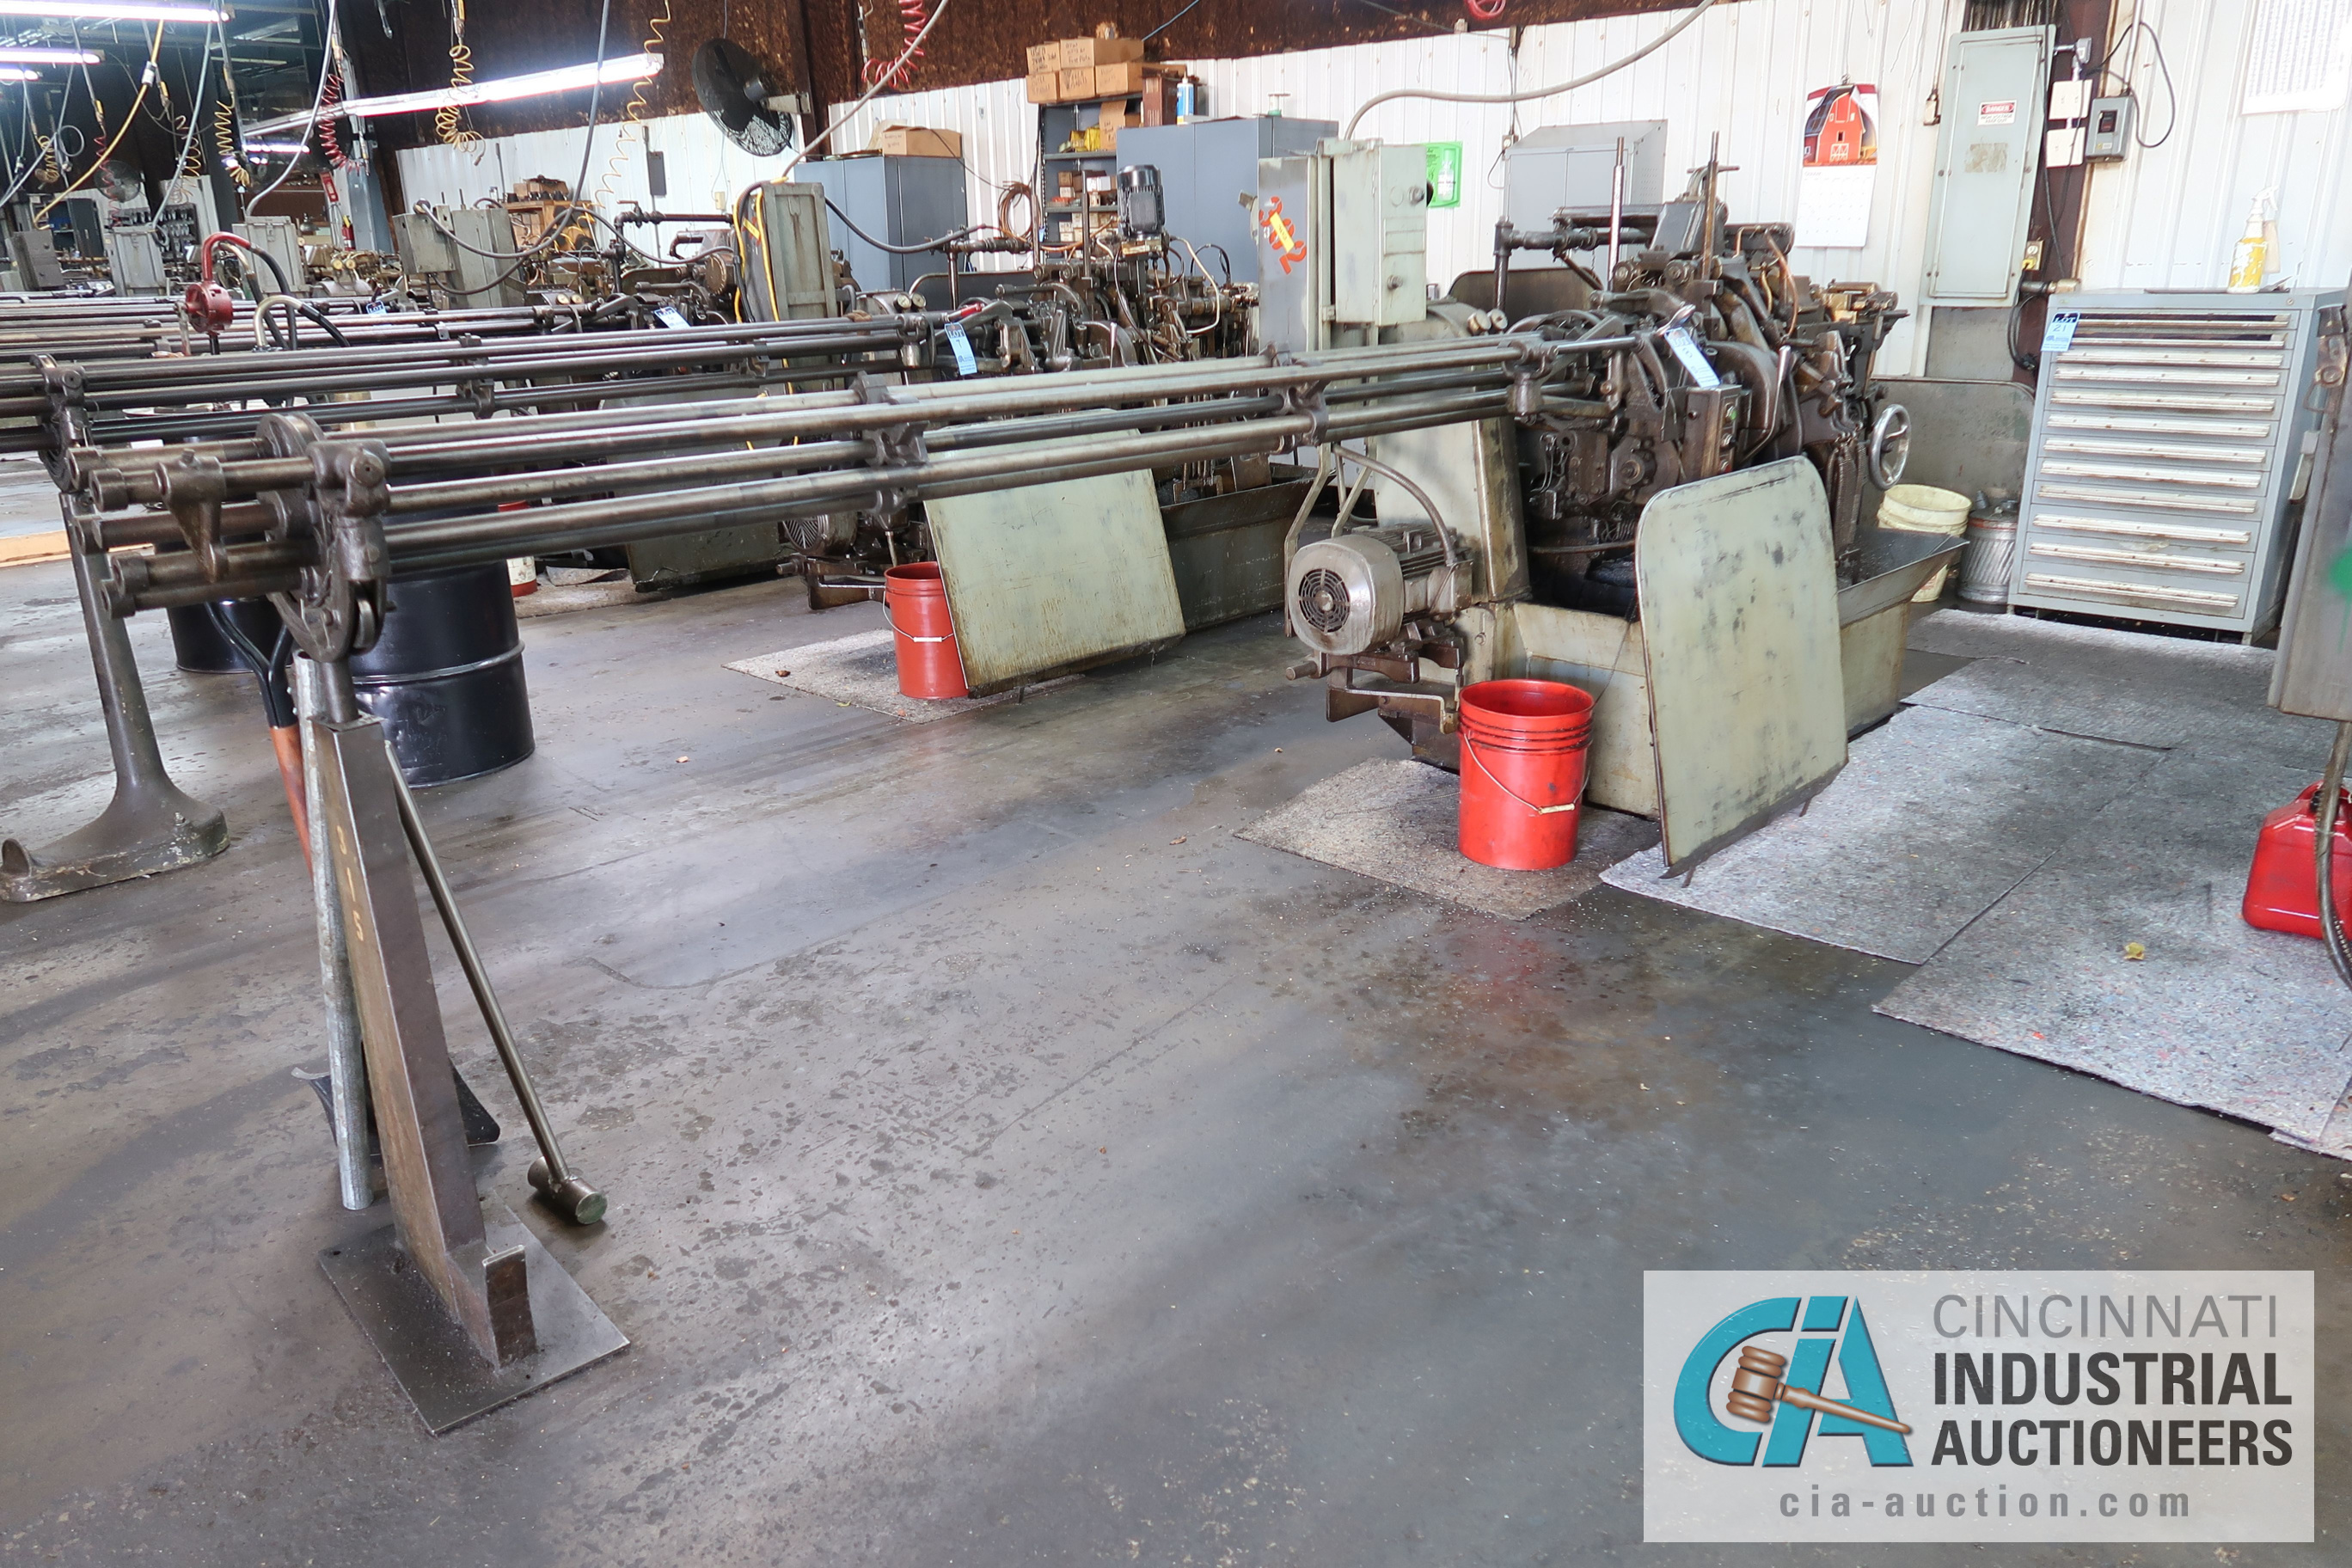 """3/4"""" DAVENPORT 5-SPINDLE SCREW MACHINE; S/N 110012 (NEW 11-1981), WITH THREAD CLUTCH, PICK OFF, - Image 3 of 3"""